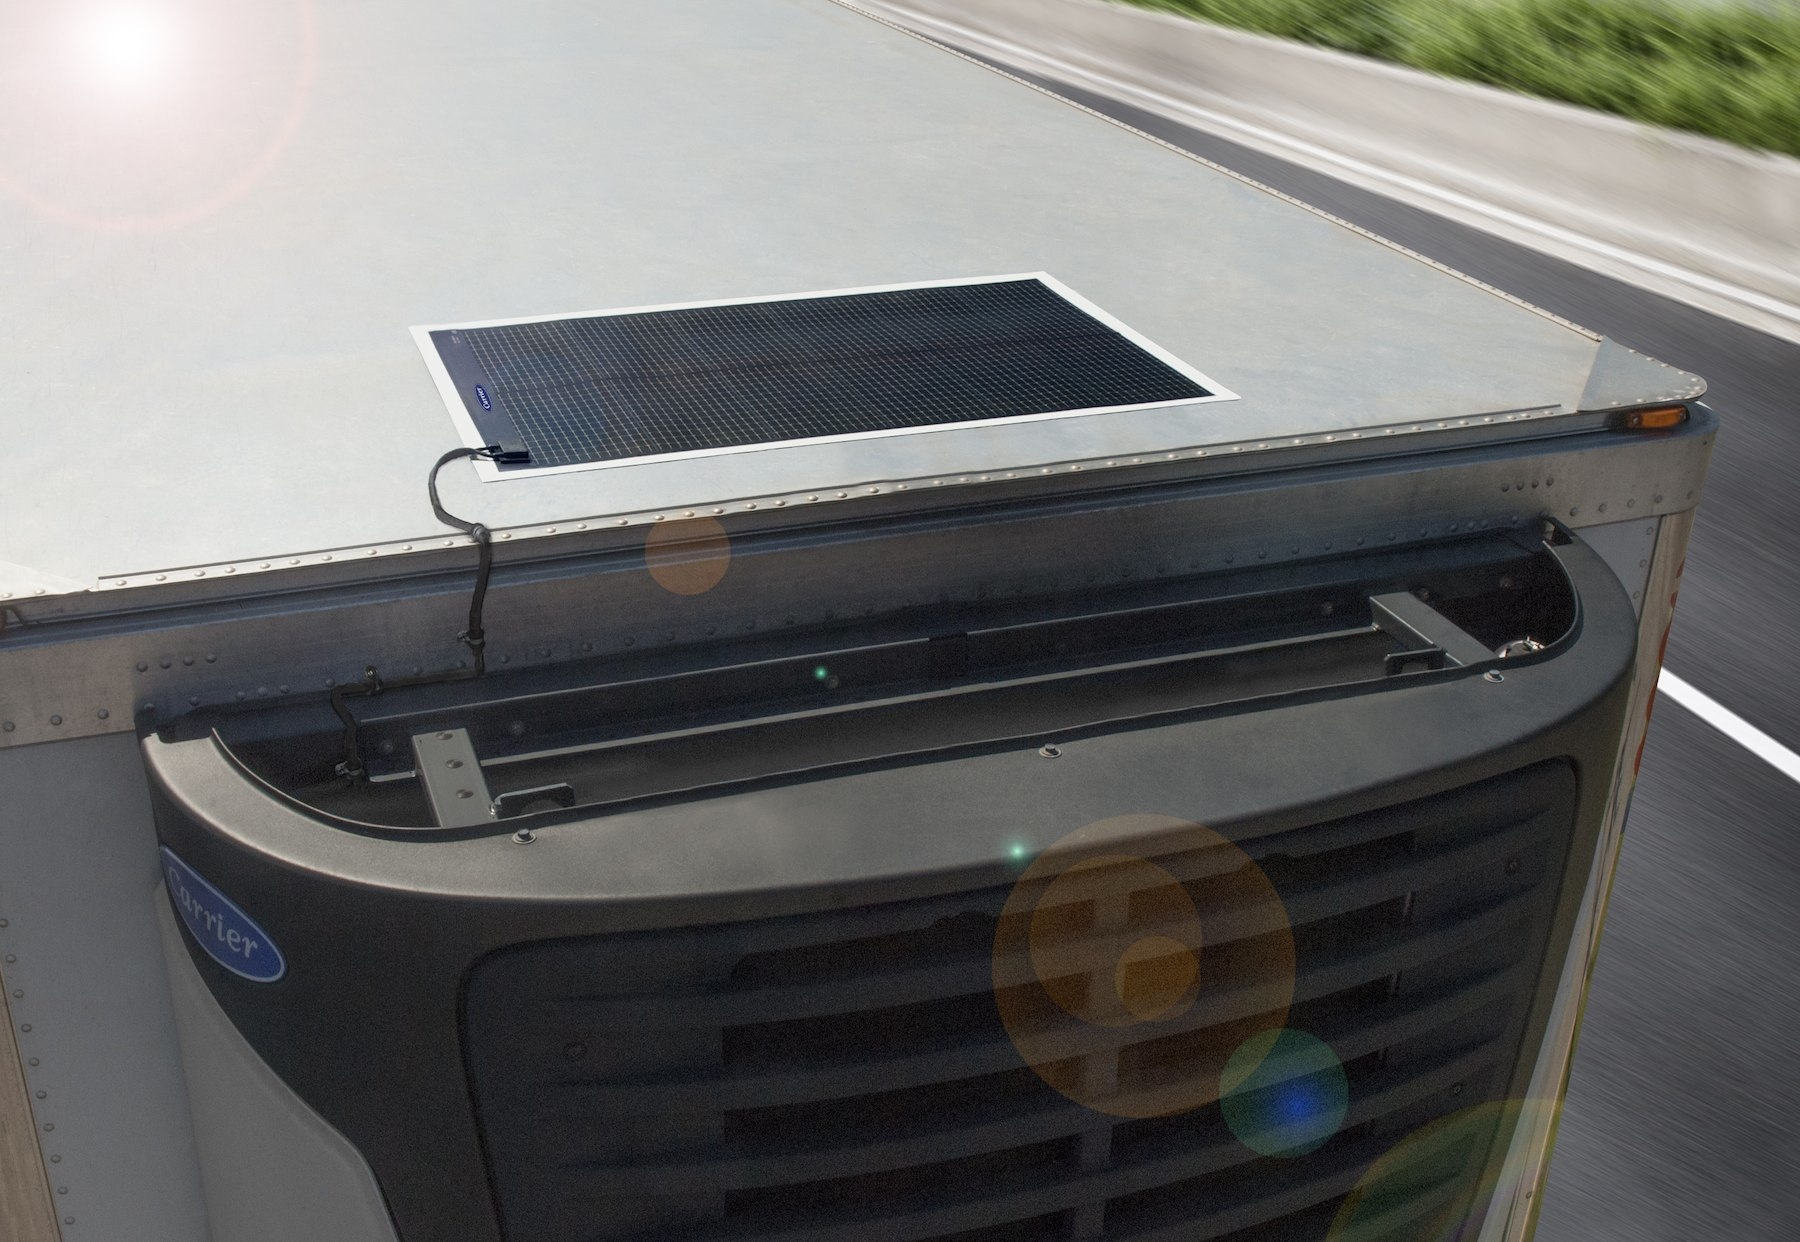 Carrier Using Solar Power To Charge Reefer Units Truck News